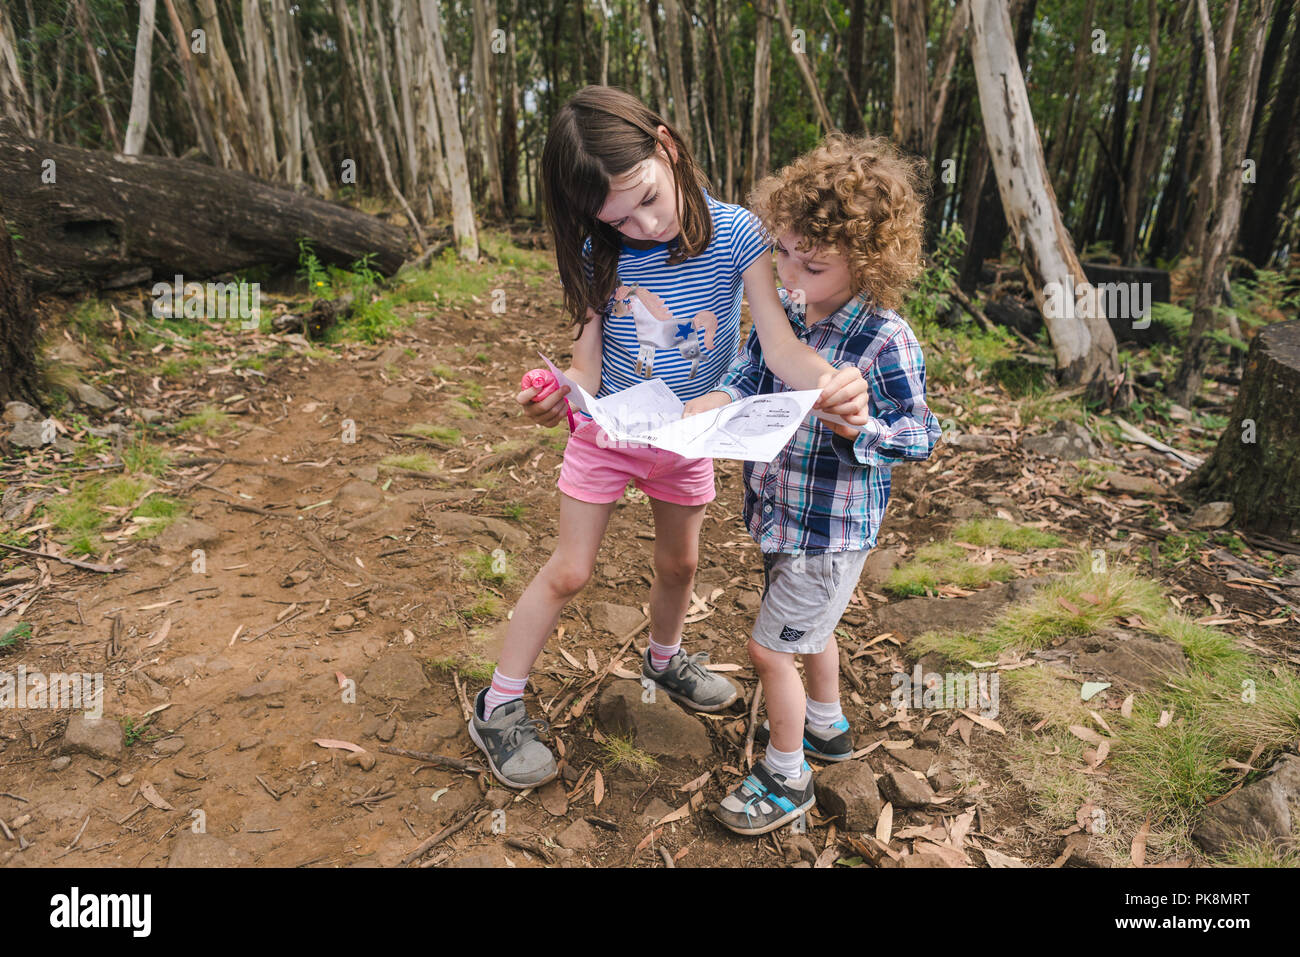 Young kids reading a map on a bush trail children reading a map in the woods Stock Photo